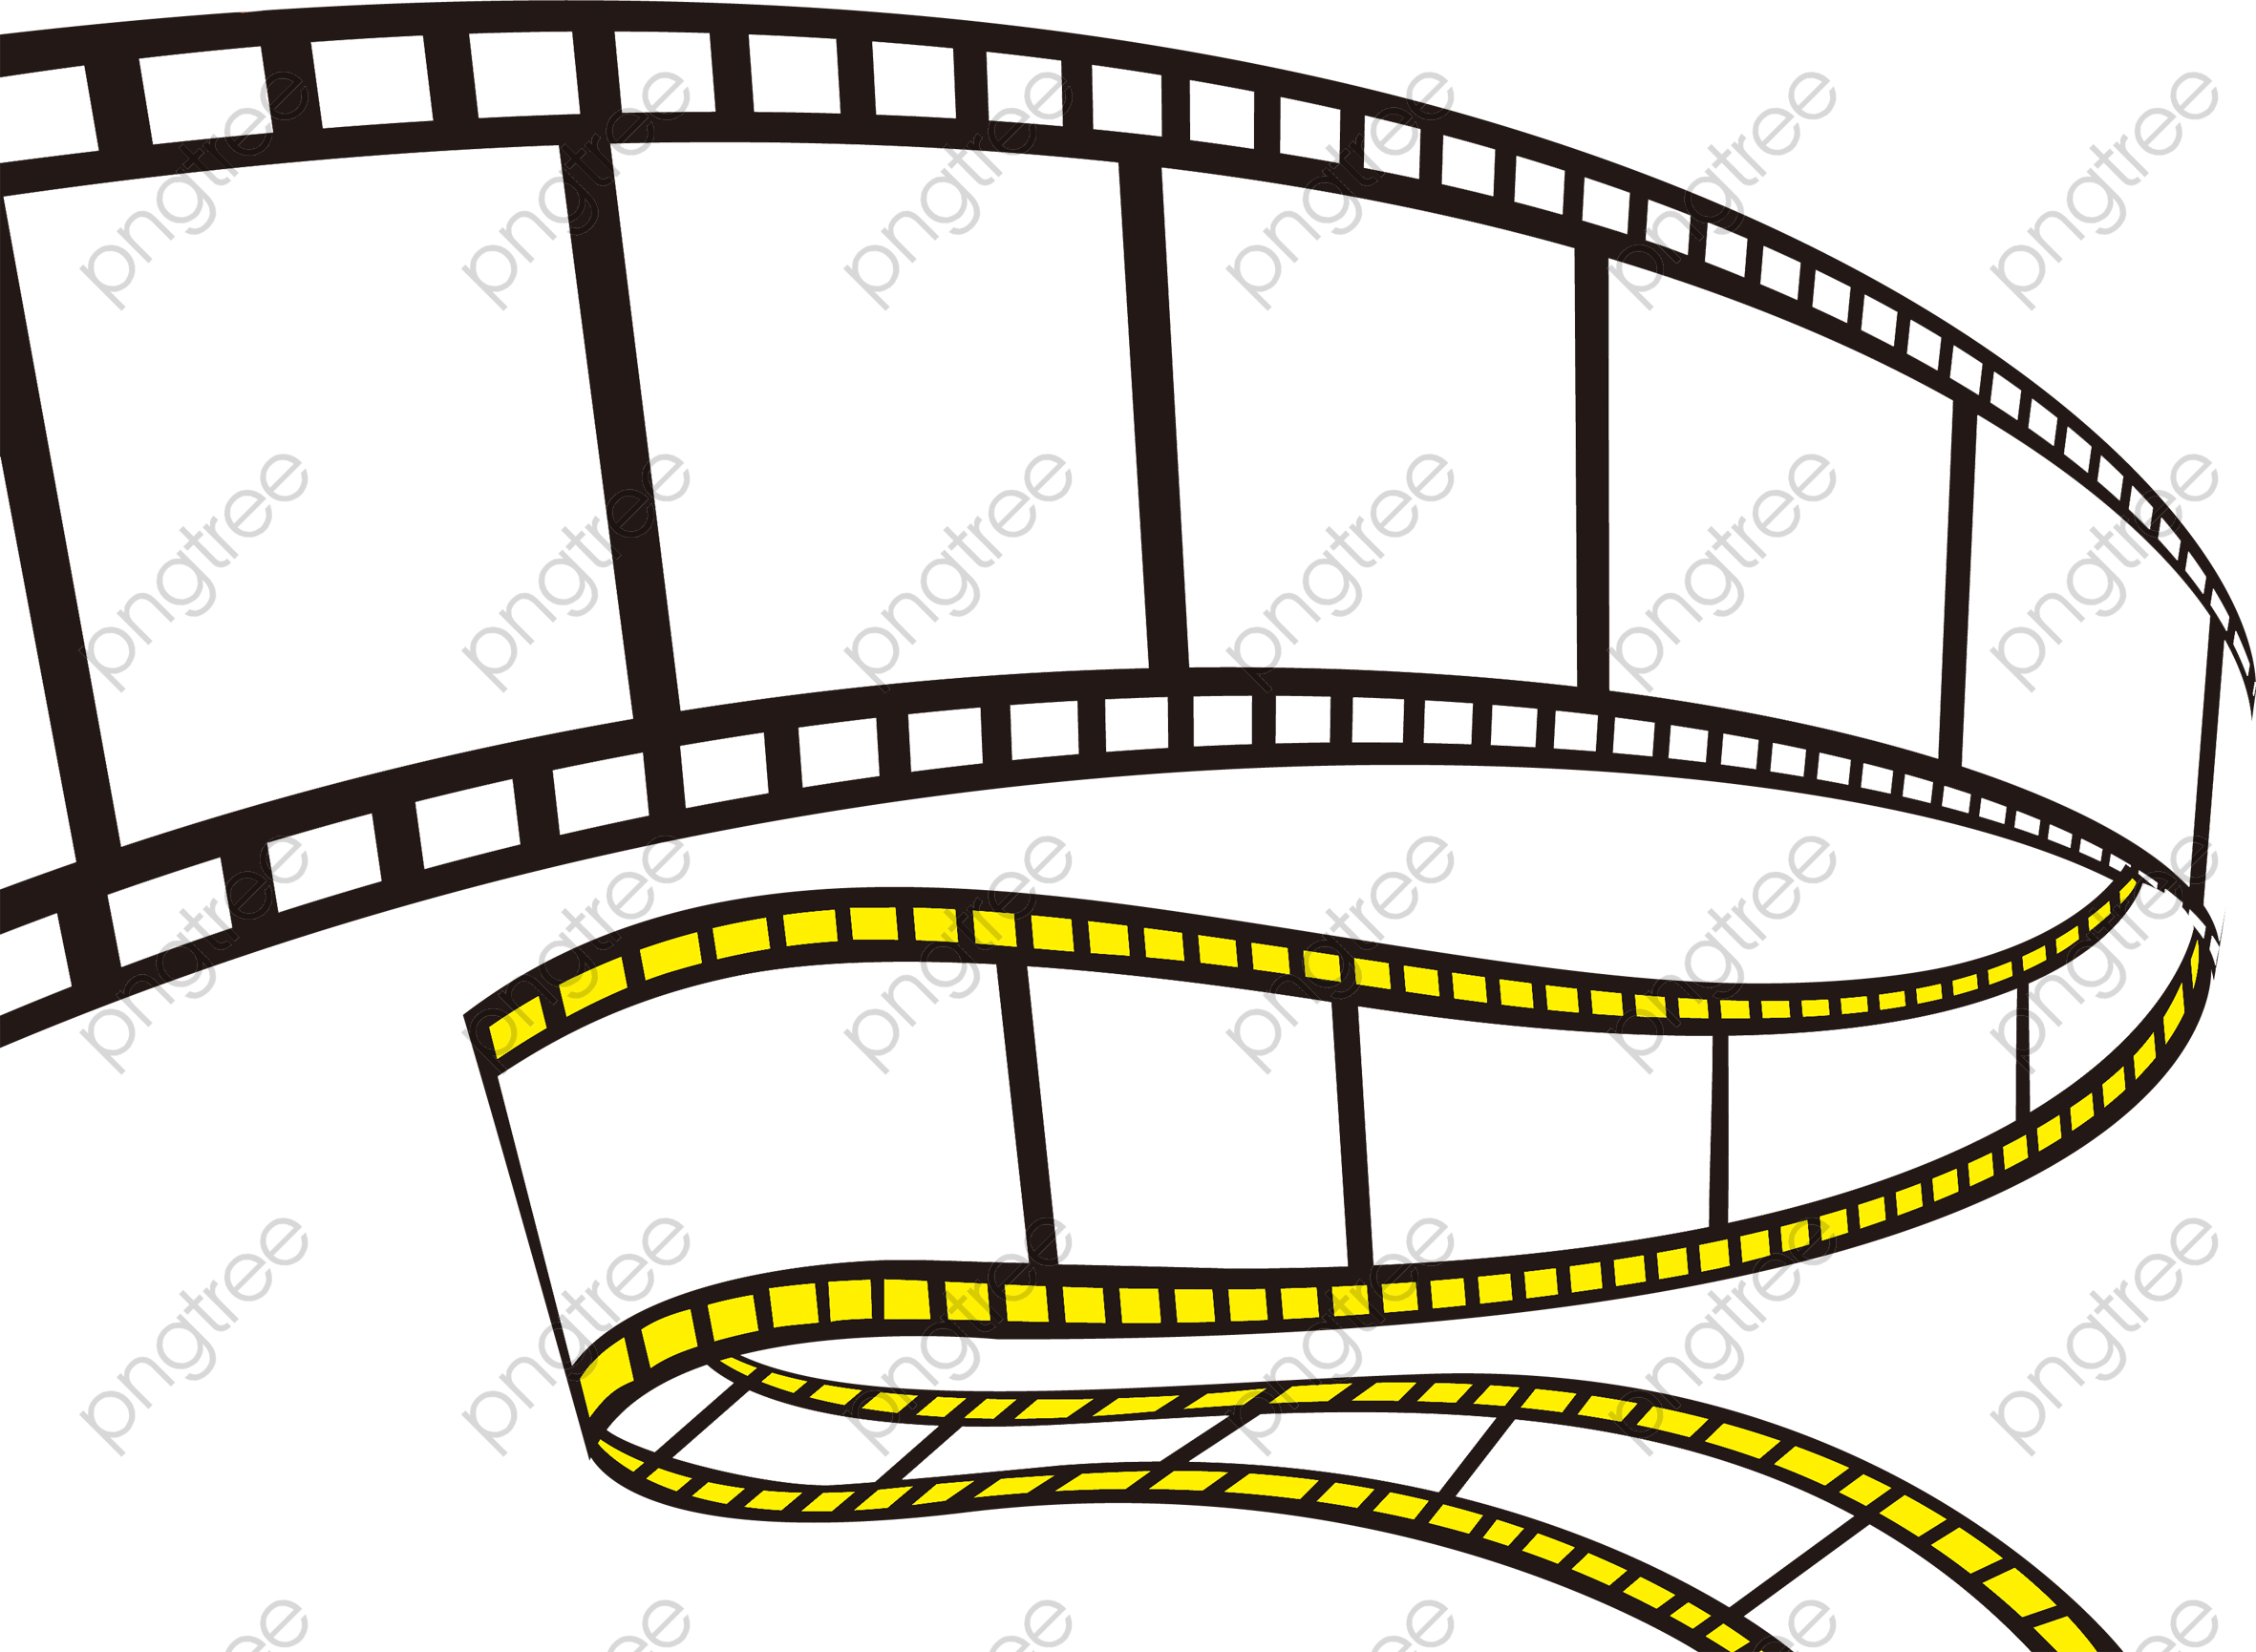 Transparent film PNG Format Image With Size 2362*1730 Preview Page.